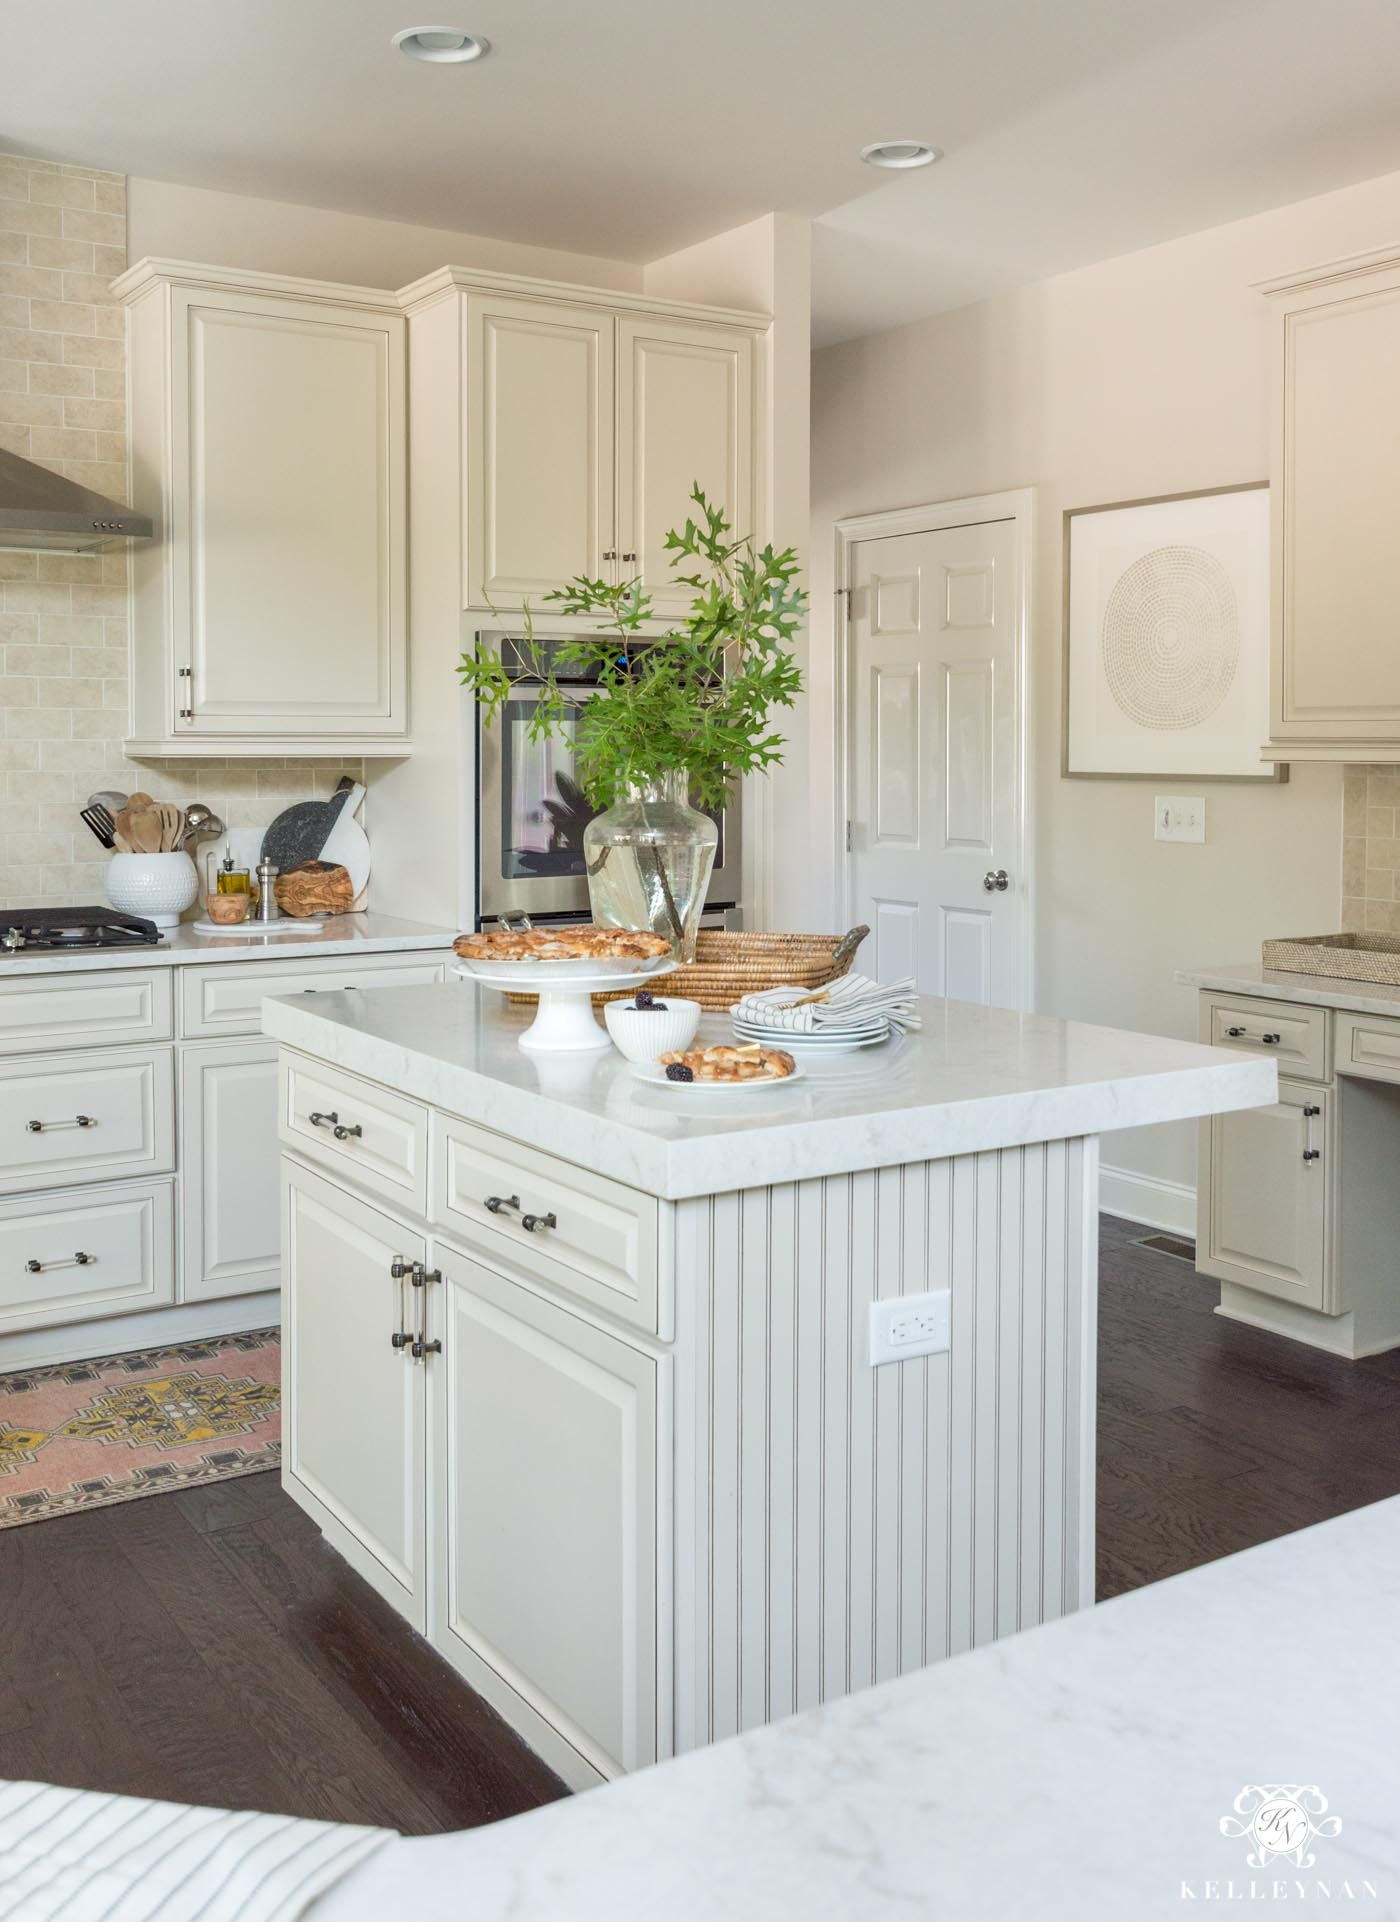 Update And Make A Traditional Cream Kitchen More Modern On A Budget Replacing Kitchen Countertops Inexpensive Kitchen Cabinets Whitewash Kitchen Cabinets